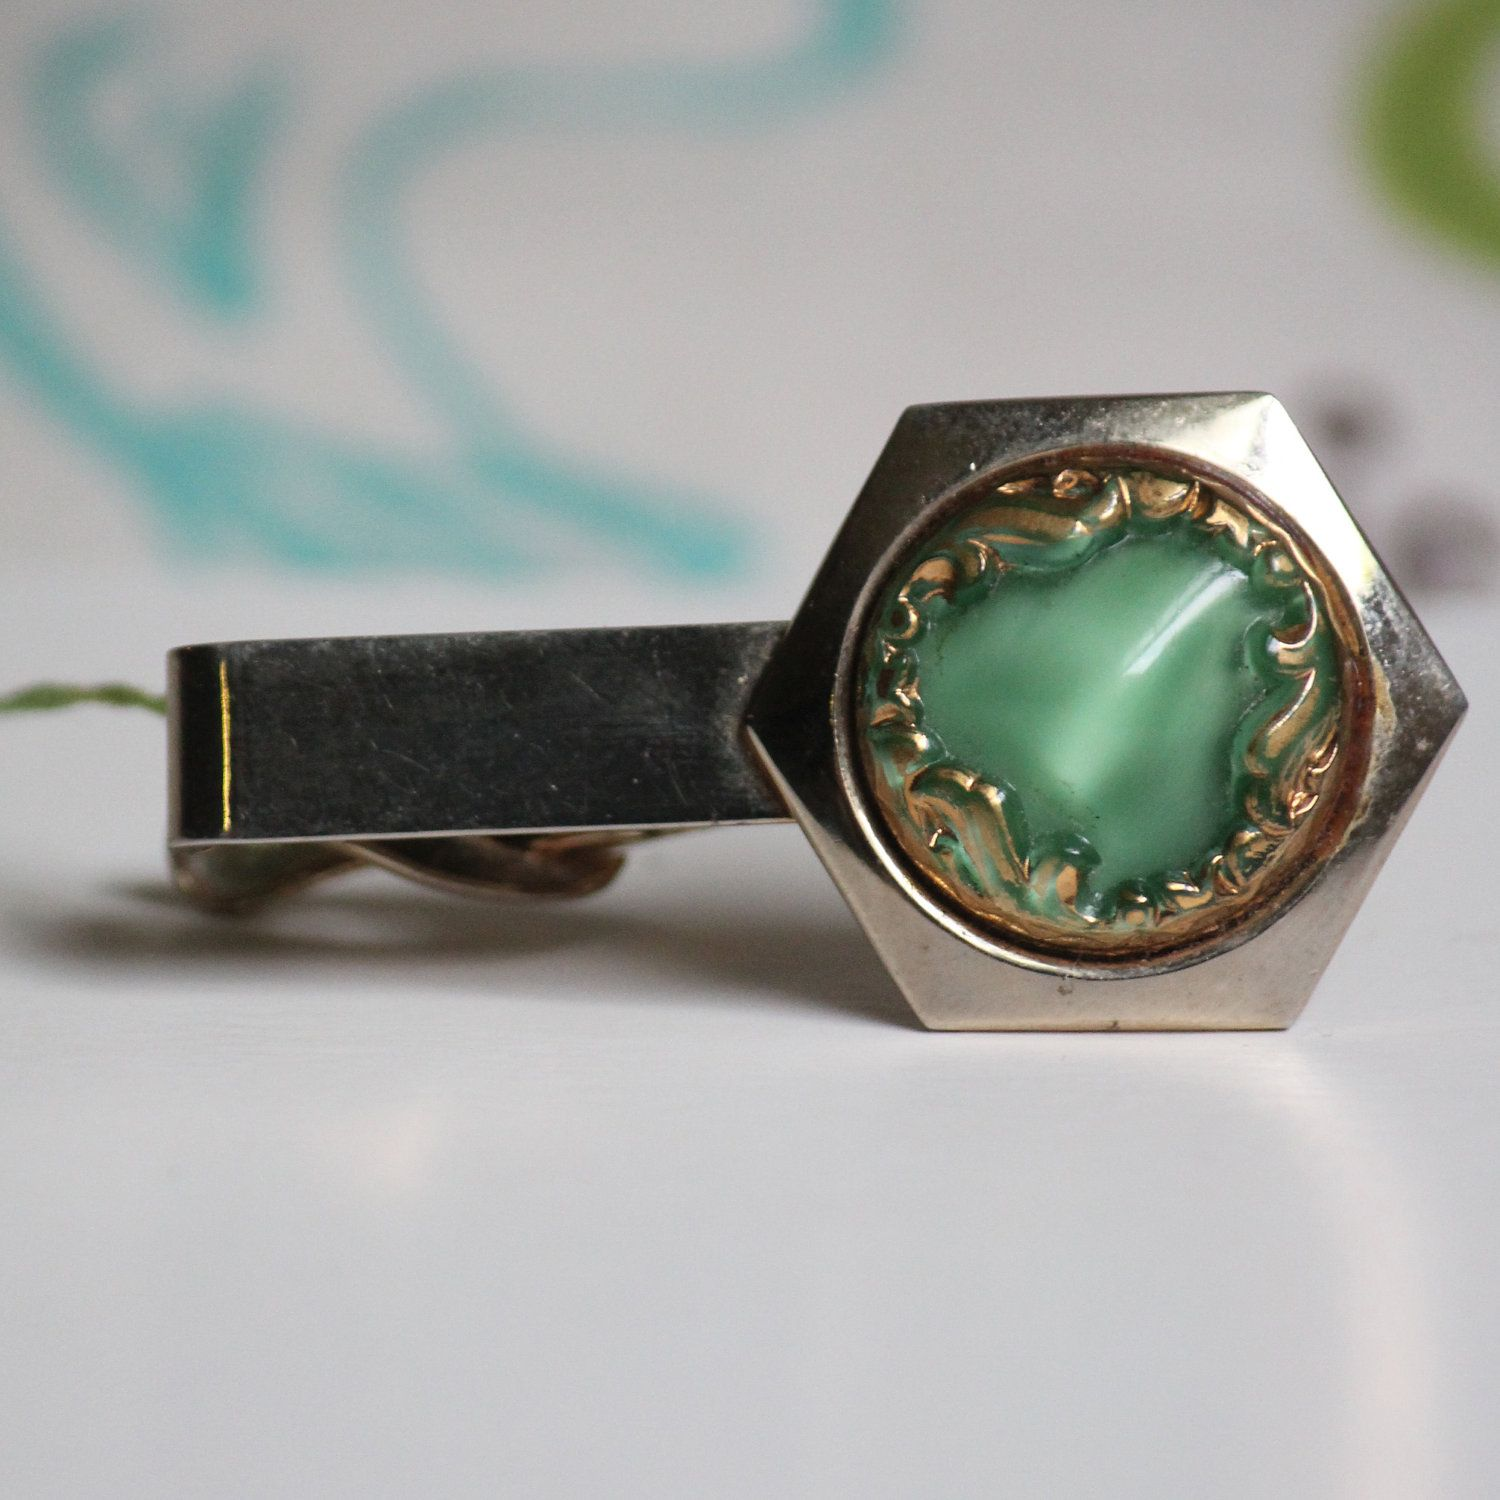 Vintage Silver Tone Metal Tie Clip with Scottish Thistle and Enamel Decoration Groom Best Man Accessory